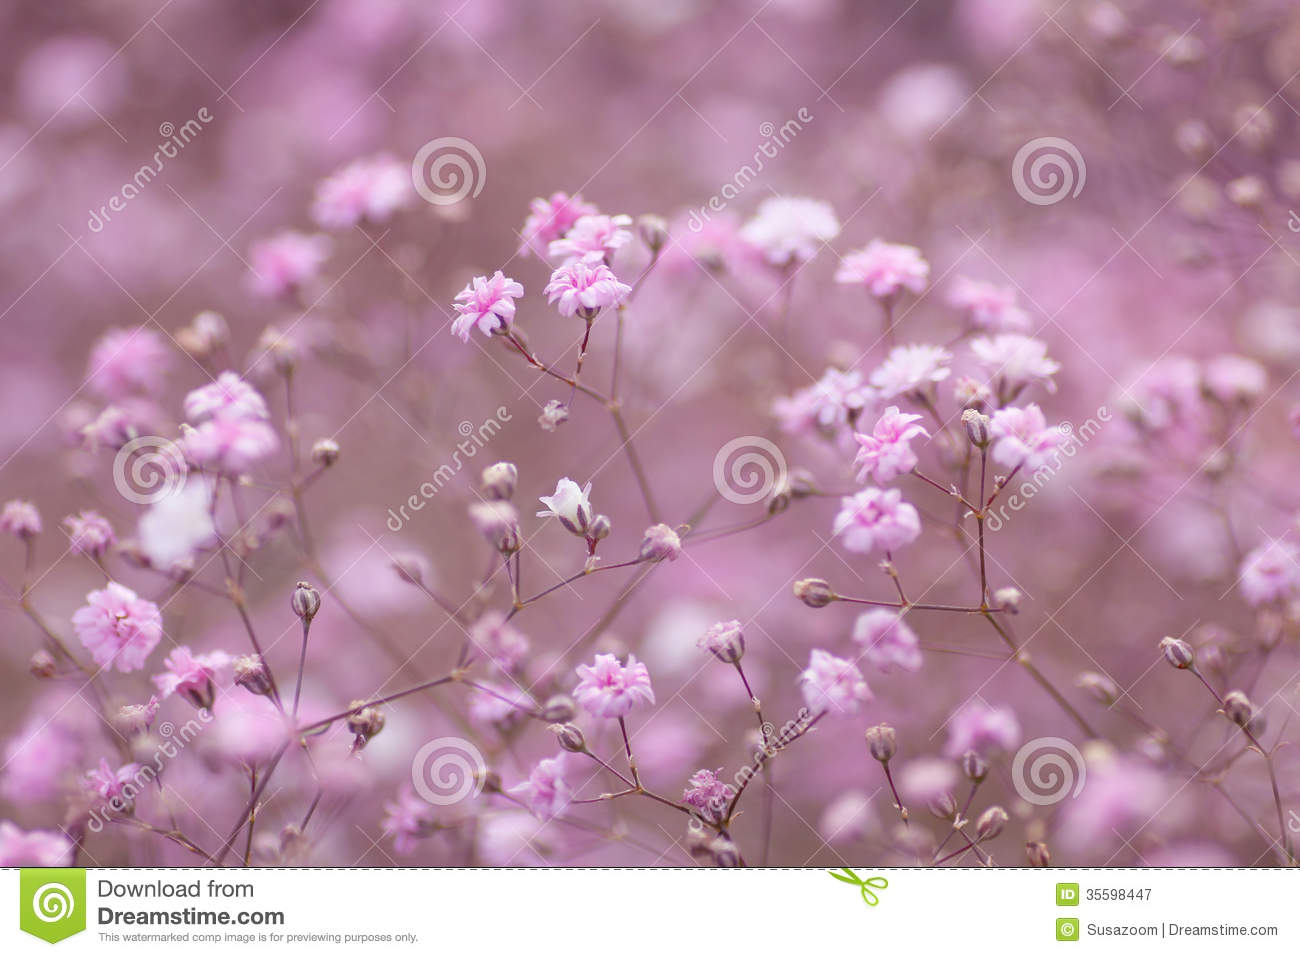 light pink floral background - photo #46